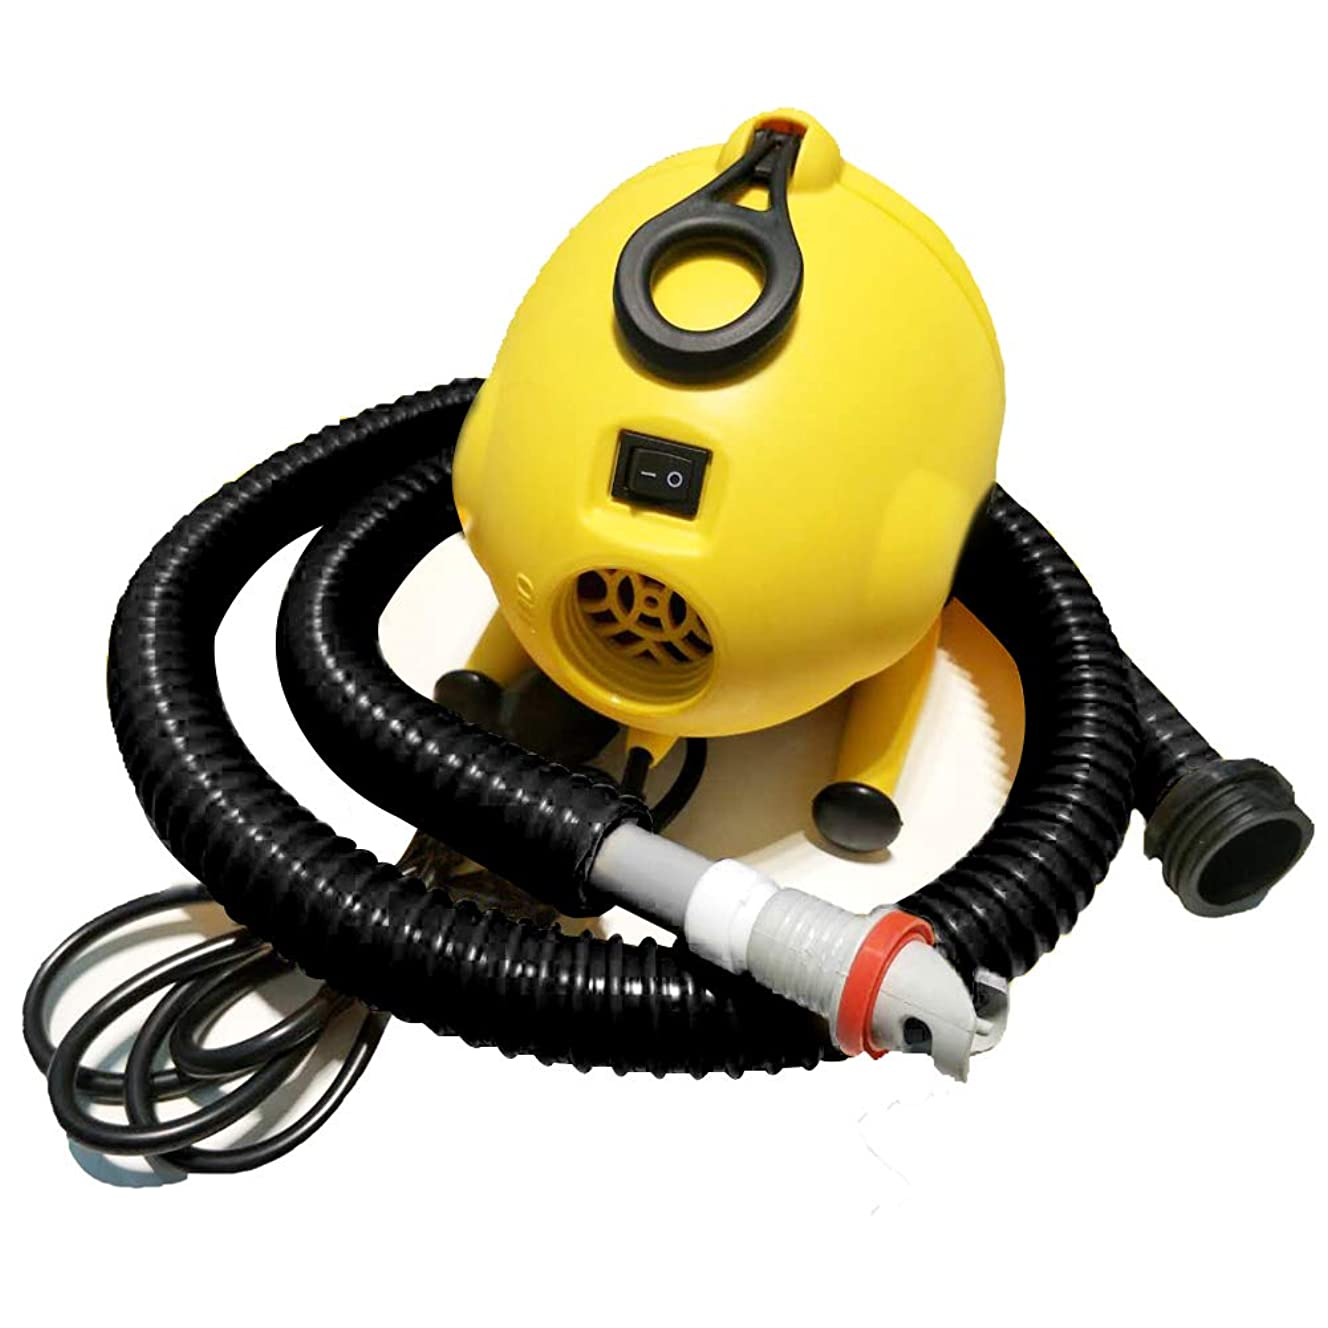 AIRMAT FACTORY Electric Air Pump - Portable 120 V Bravo Electric Pump for Inflatables, Air Track Pump, Stand Up Paddle Board Pump, Kayak and Tents Pump